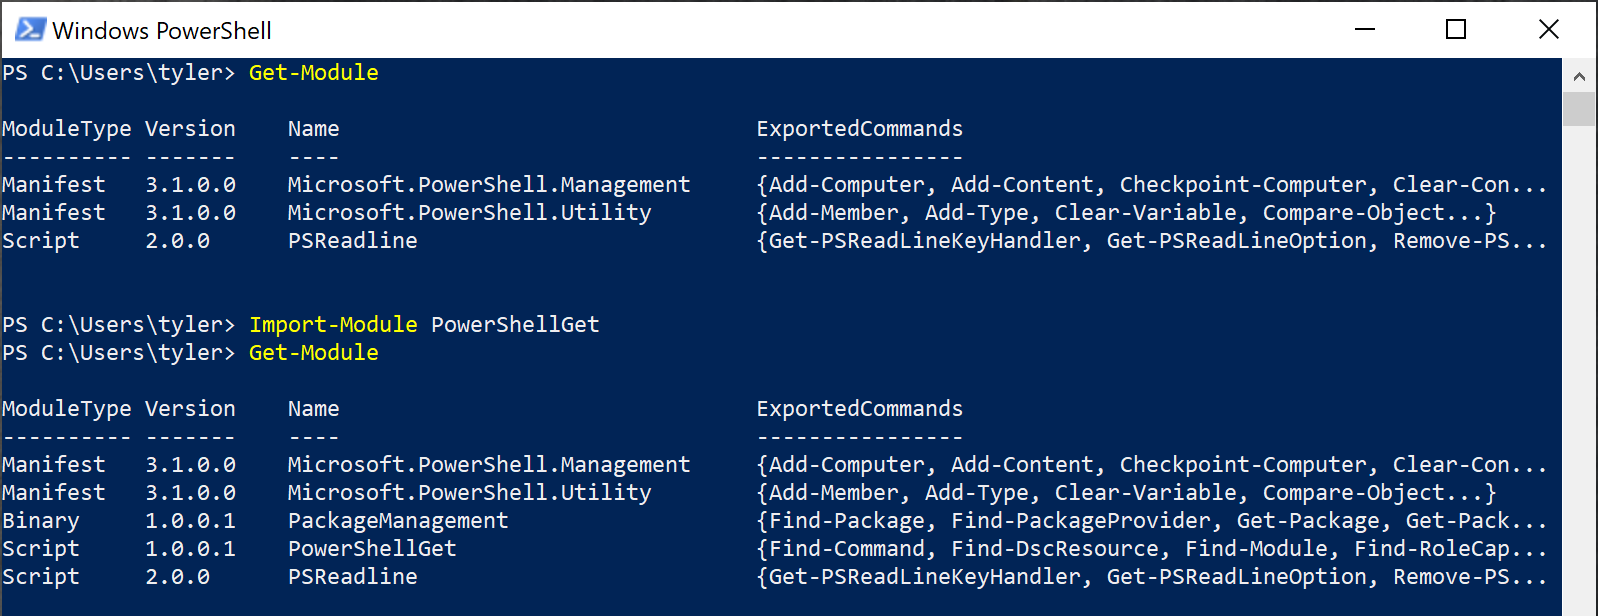 Importing modules with Import-Module